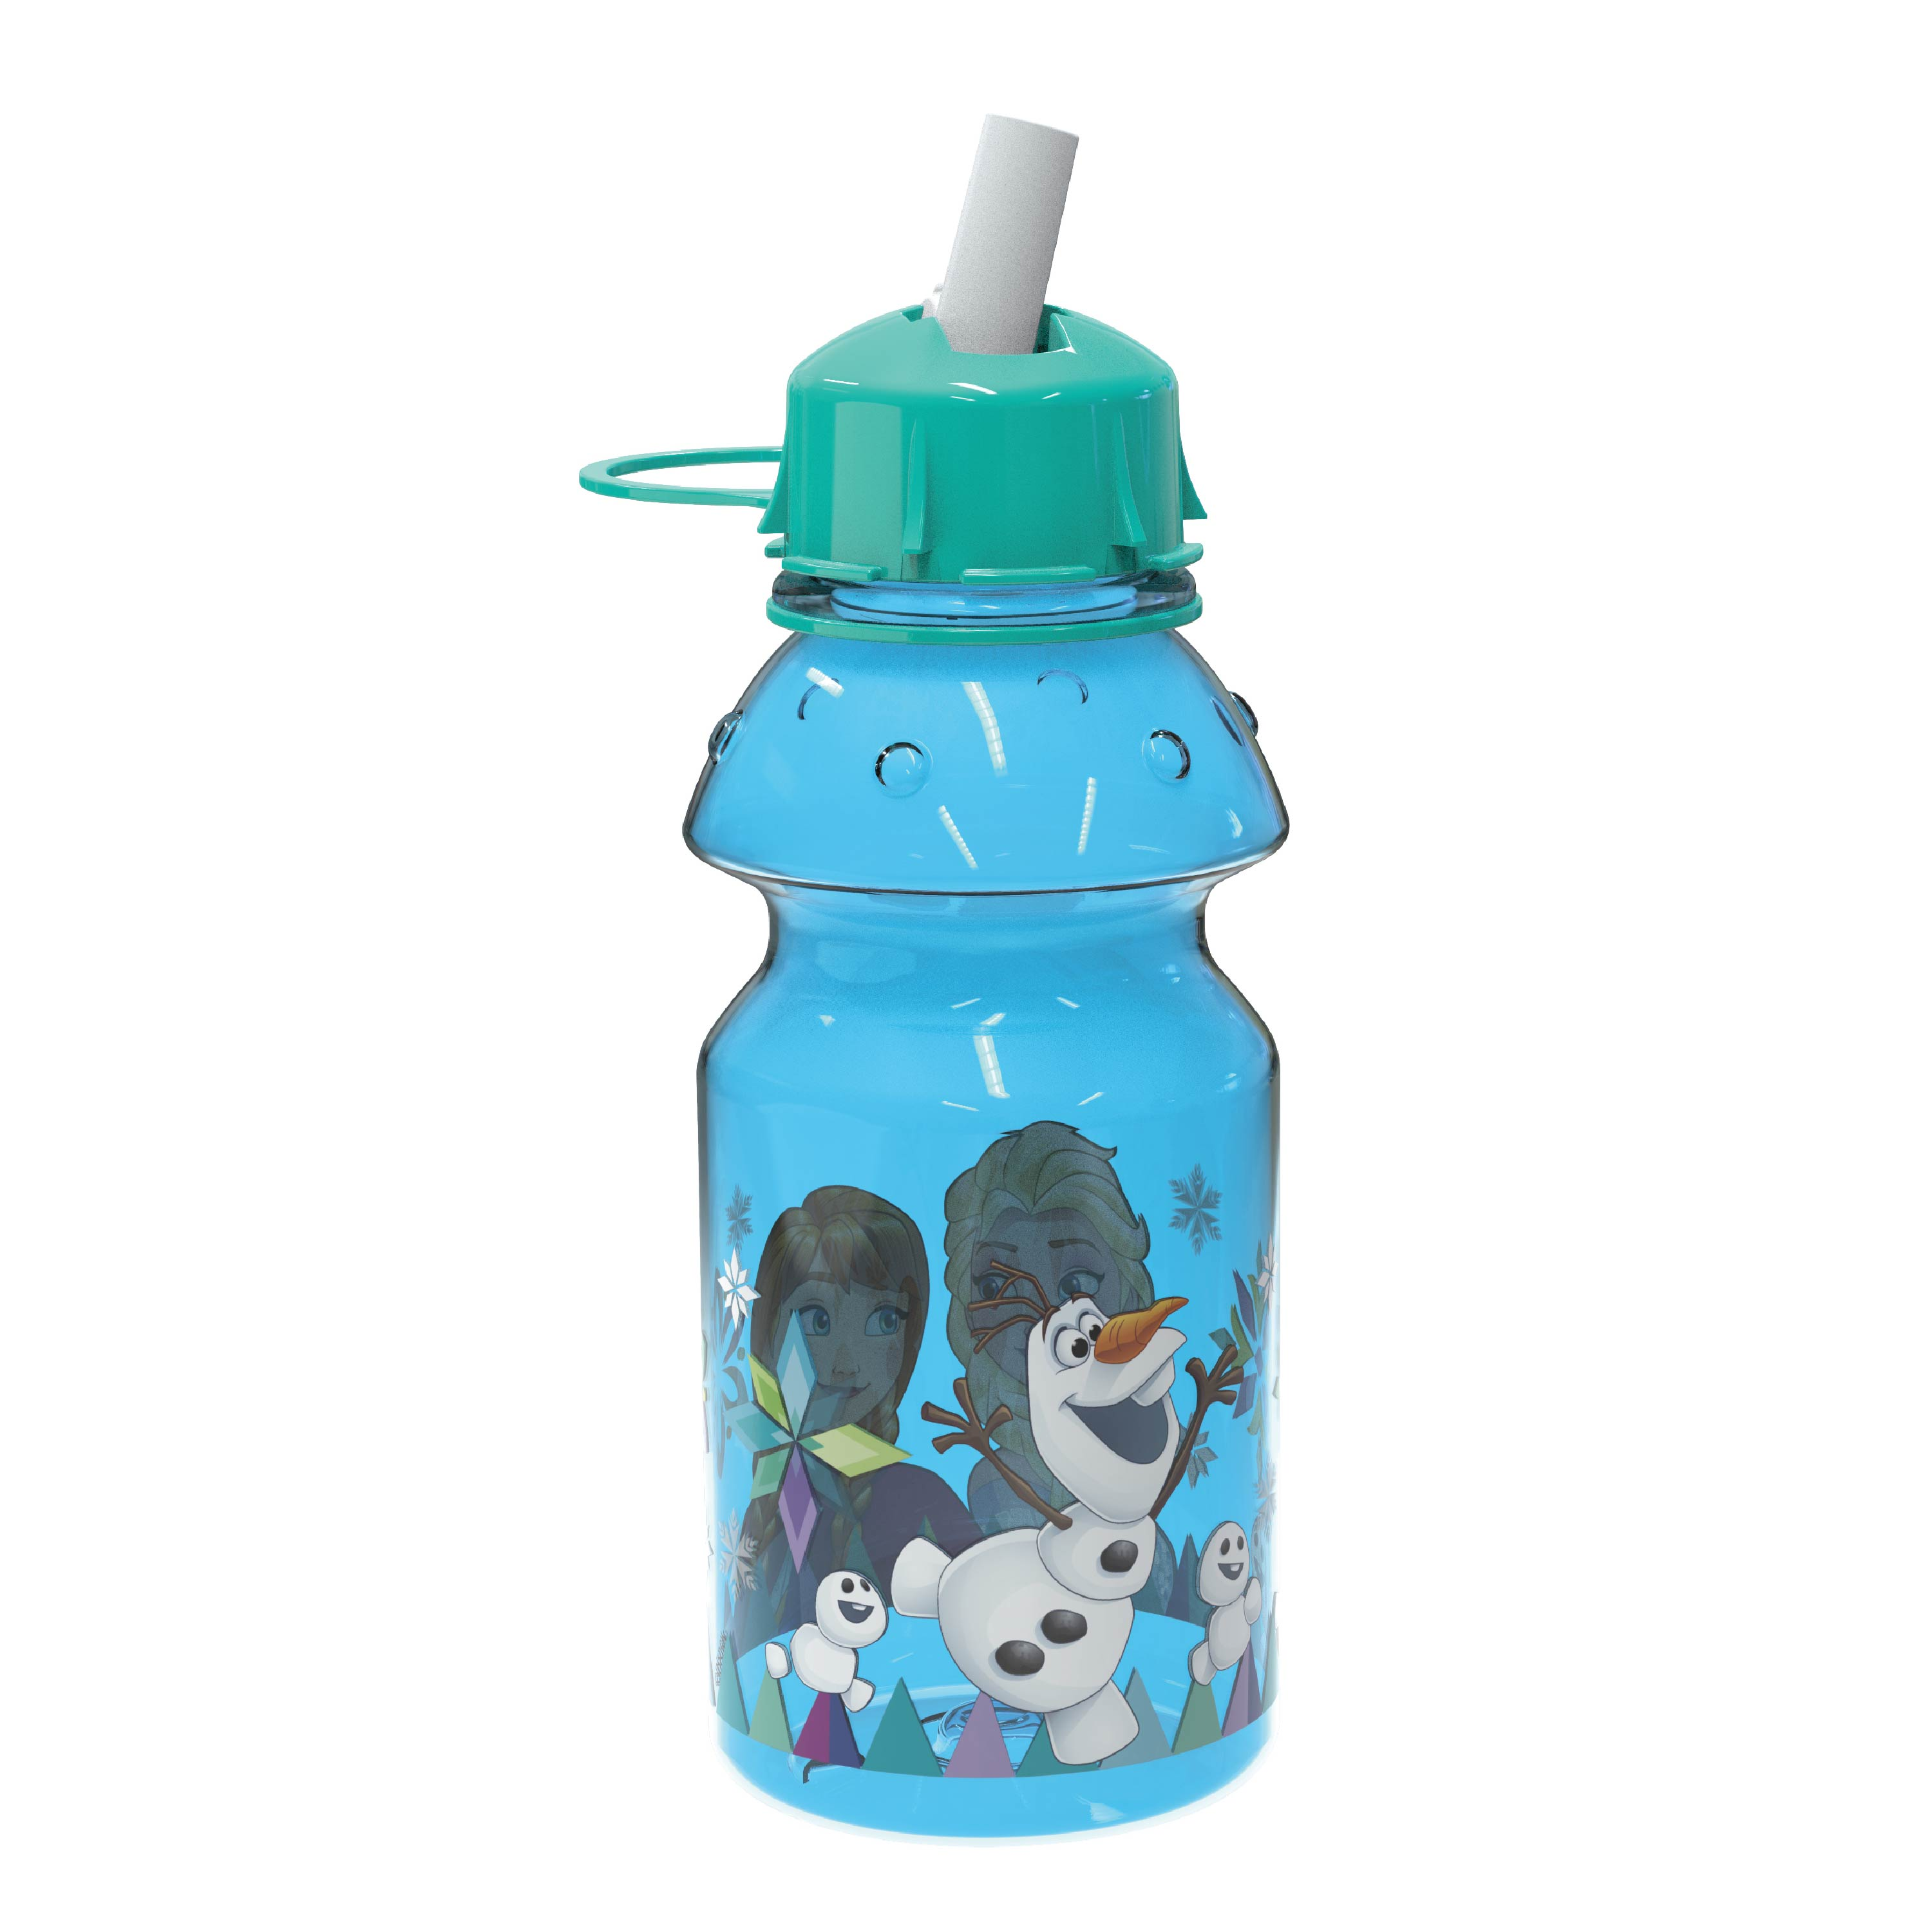 Disney Frozen 14 ounce Water Bottle, Anna, Elsa and Olaf slideshow image 4